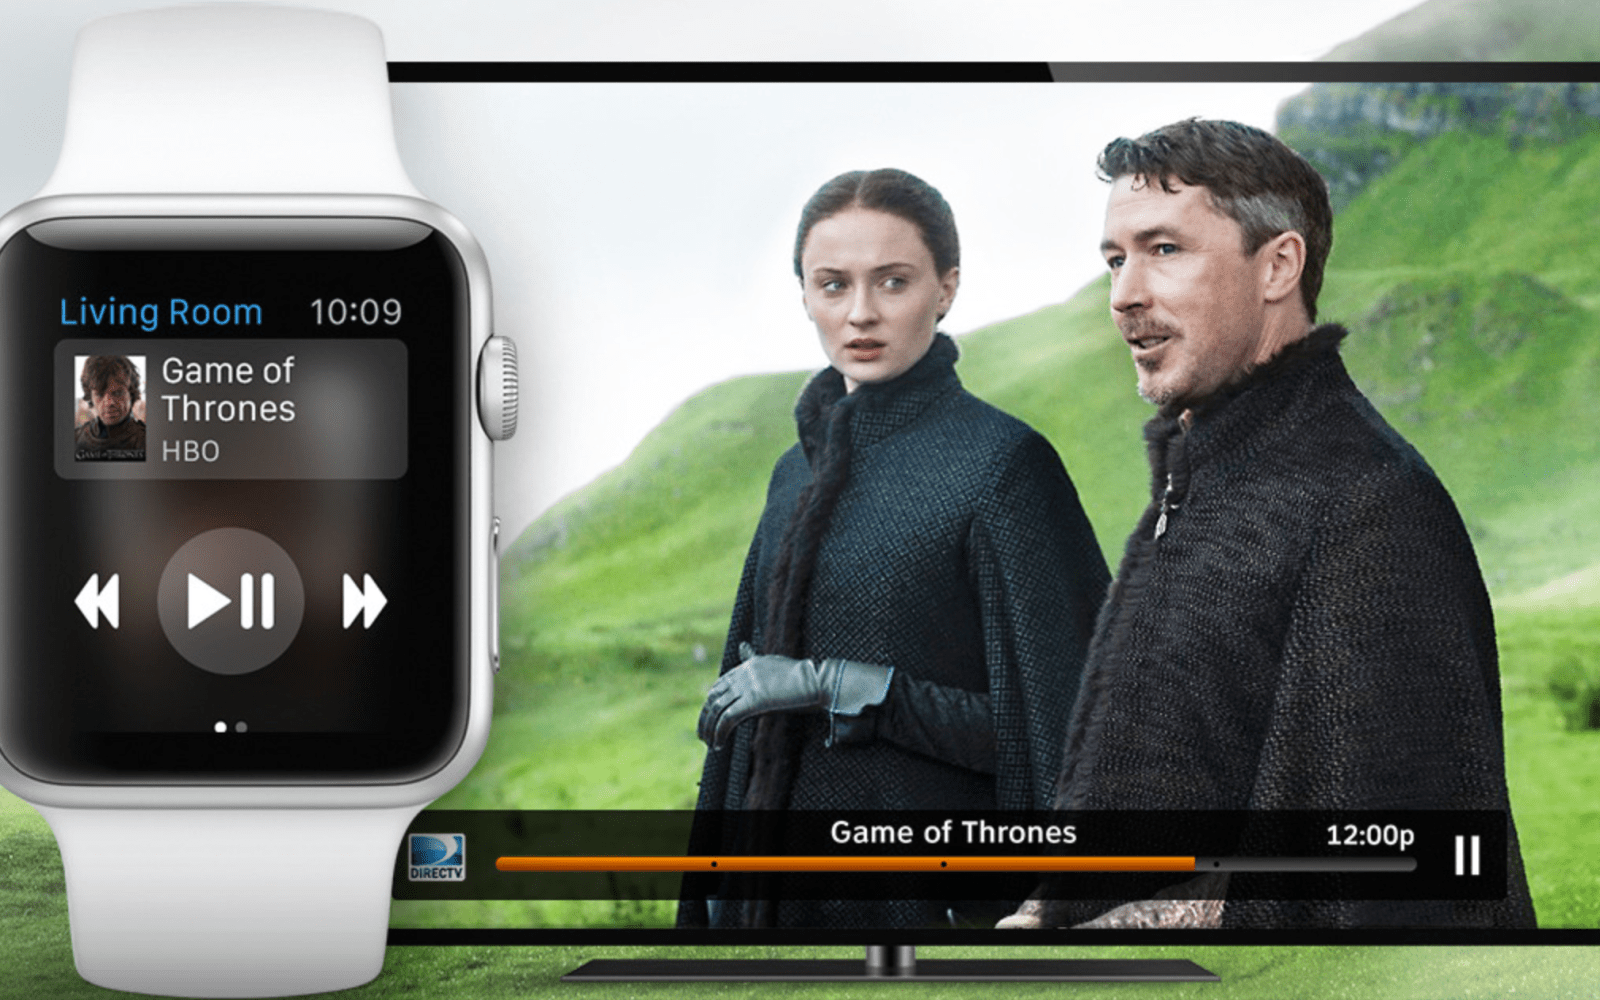 DirecTV app updated w/ support for using Apple Watch as a remote